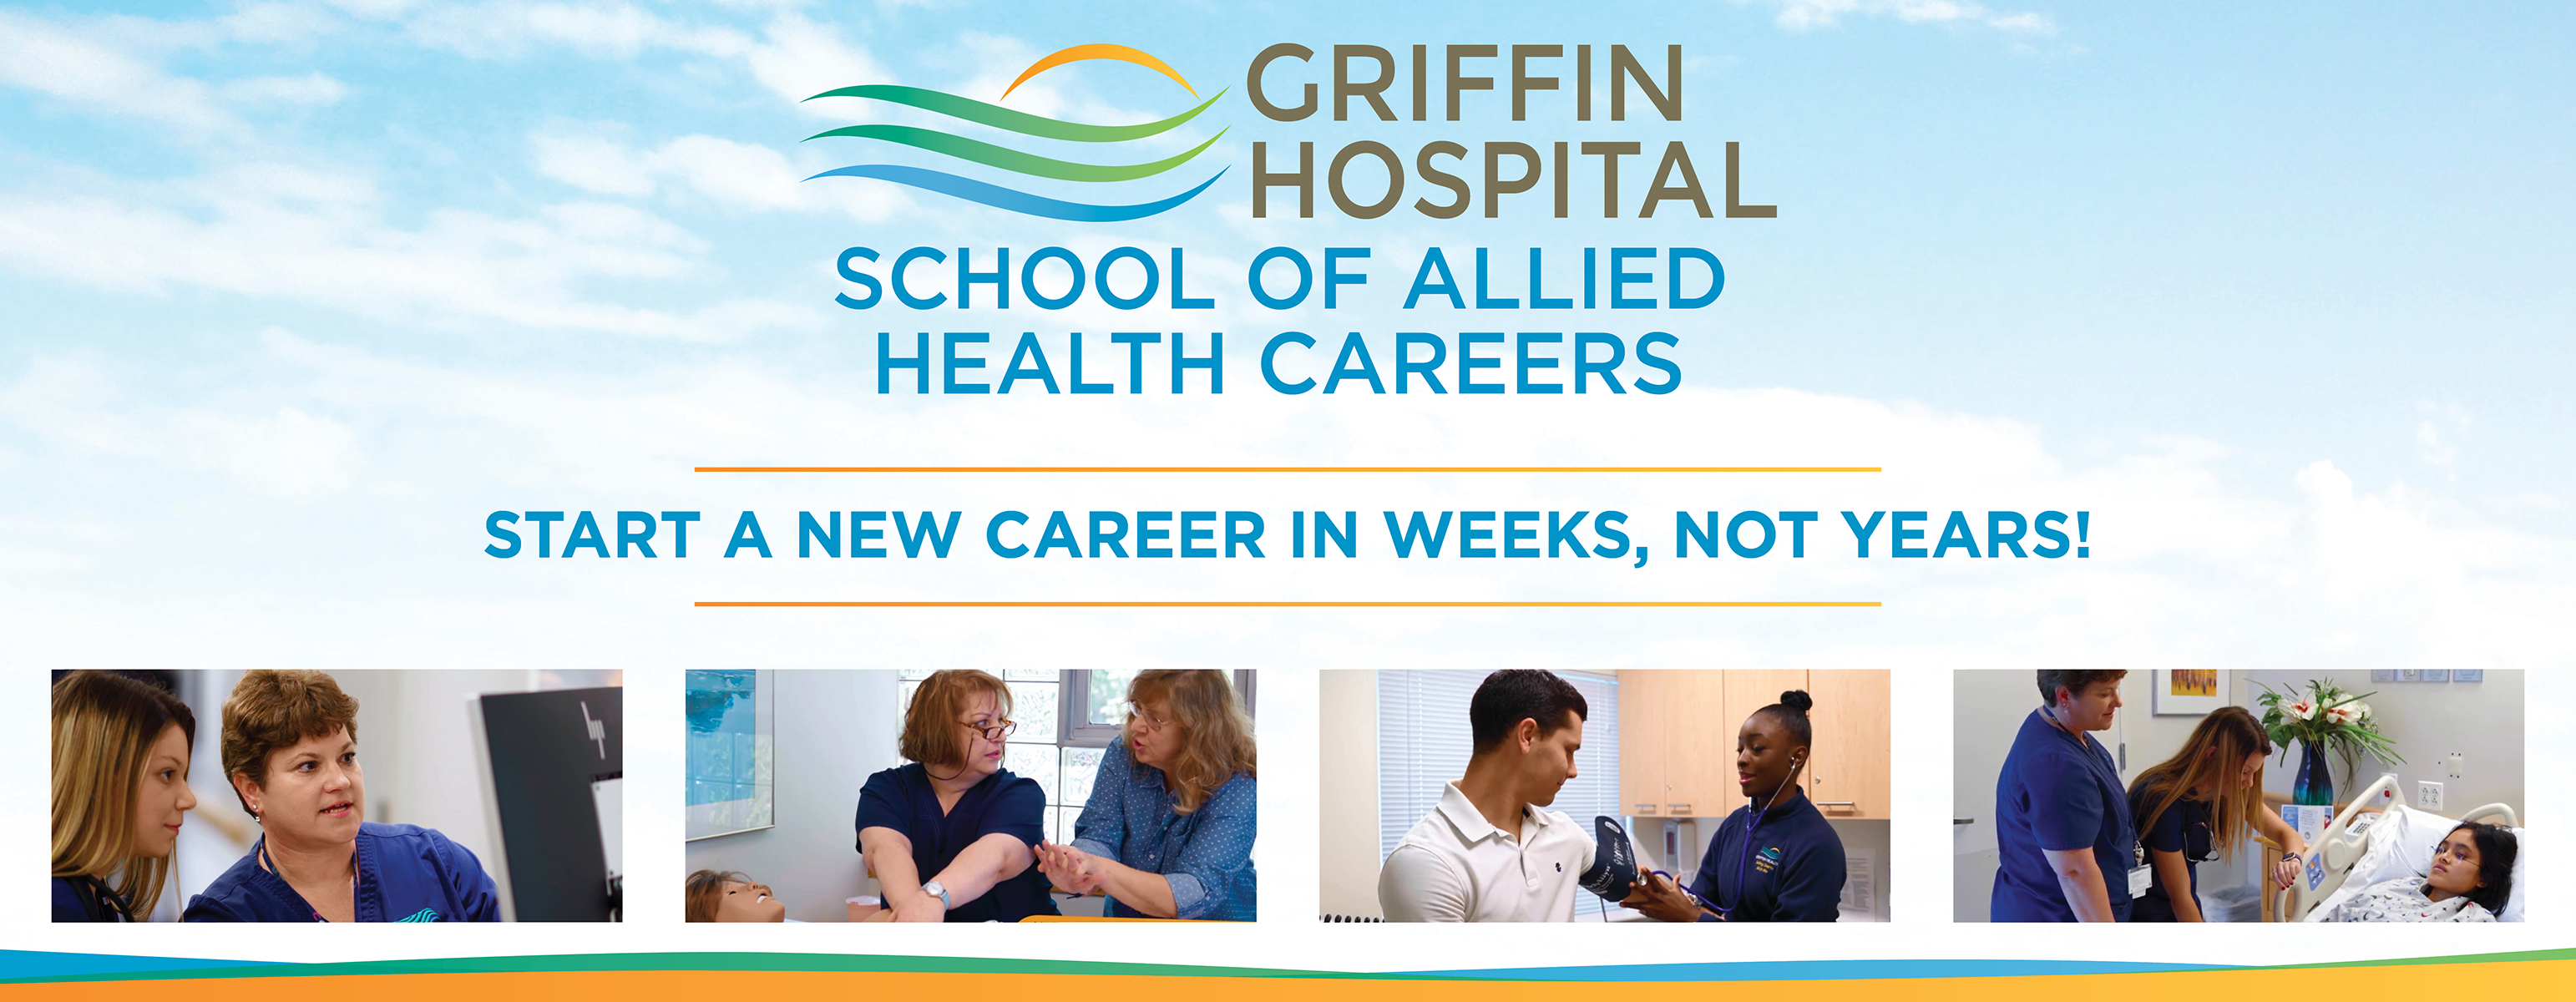 Griffin Hospital School of Allied Health Careers